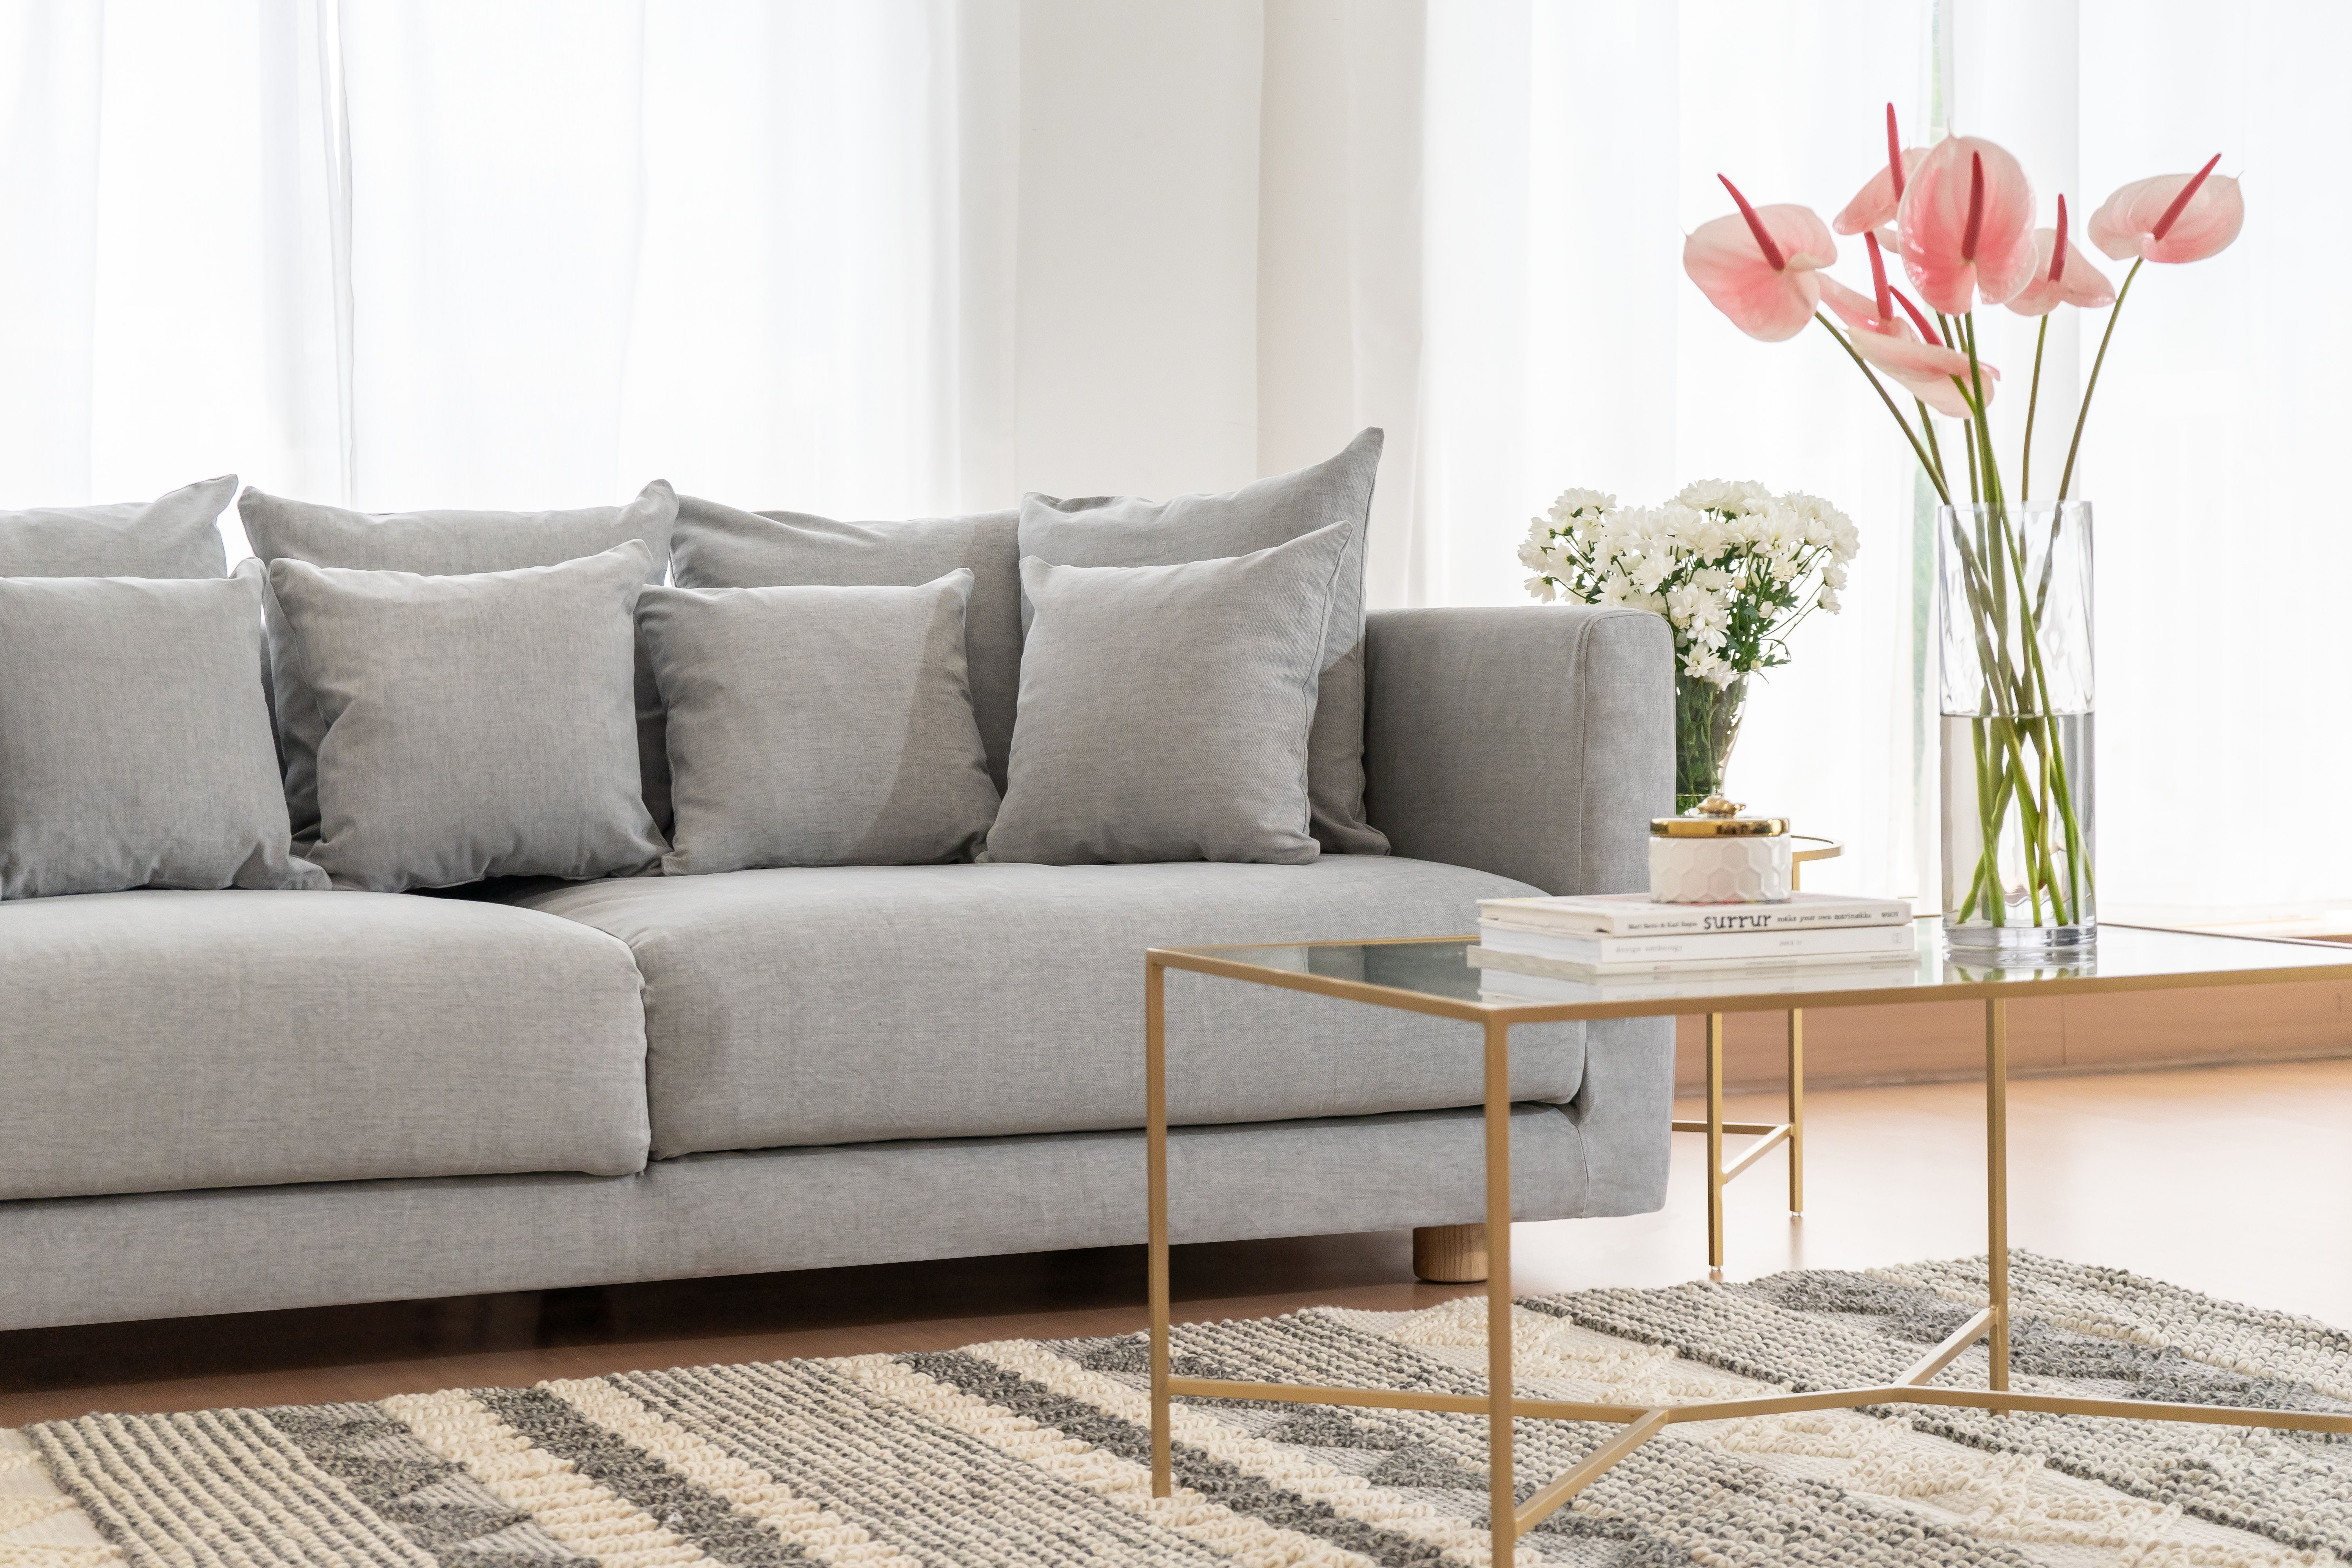 Custom Slipcovers For Ikea Stockholm 2017 Sofa In Our Madison Cotton Fabric Our New Durable Washable Cottons Are Custom Sofa Sofa Handmade Custom Slipcovers